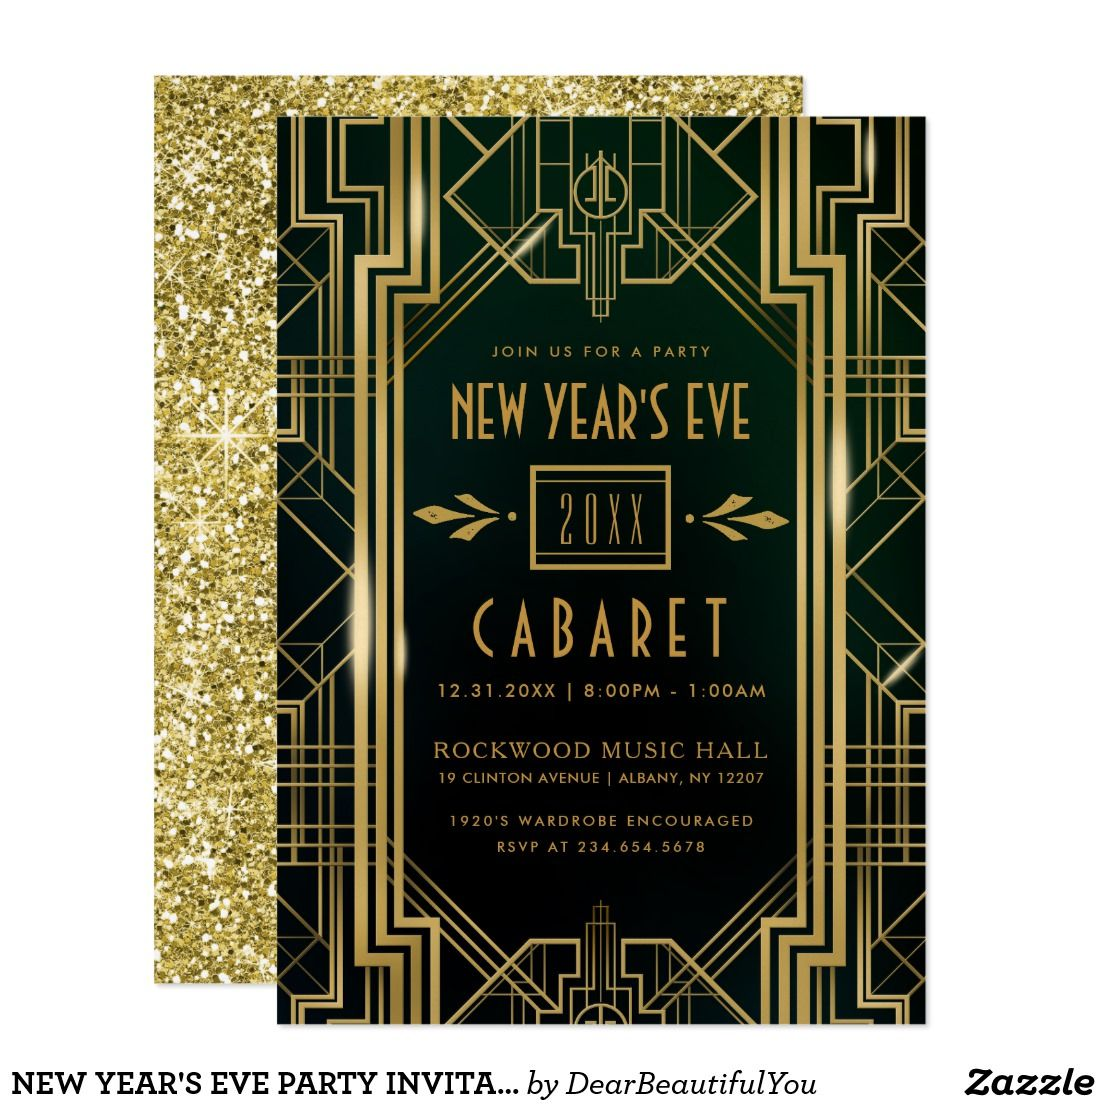 NEW YEAR'S EVE PARTY INVITATION | 1920's Cabaret | Zazzle.com | New years  eve party, New years eve, Eve parties